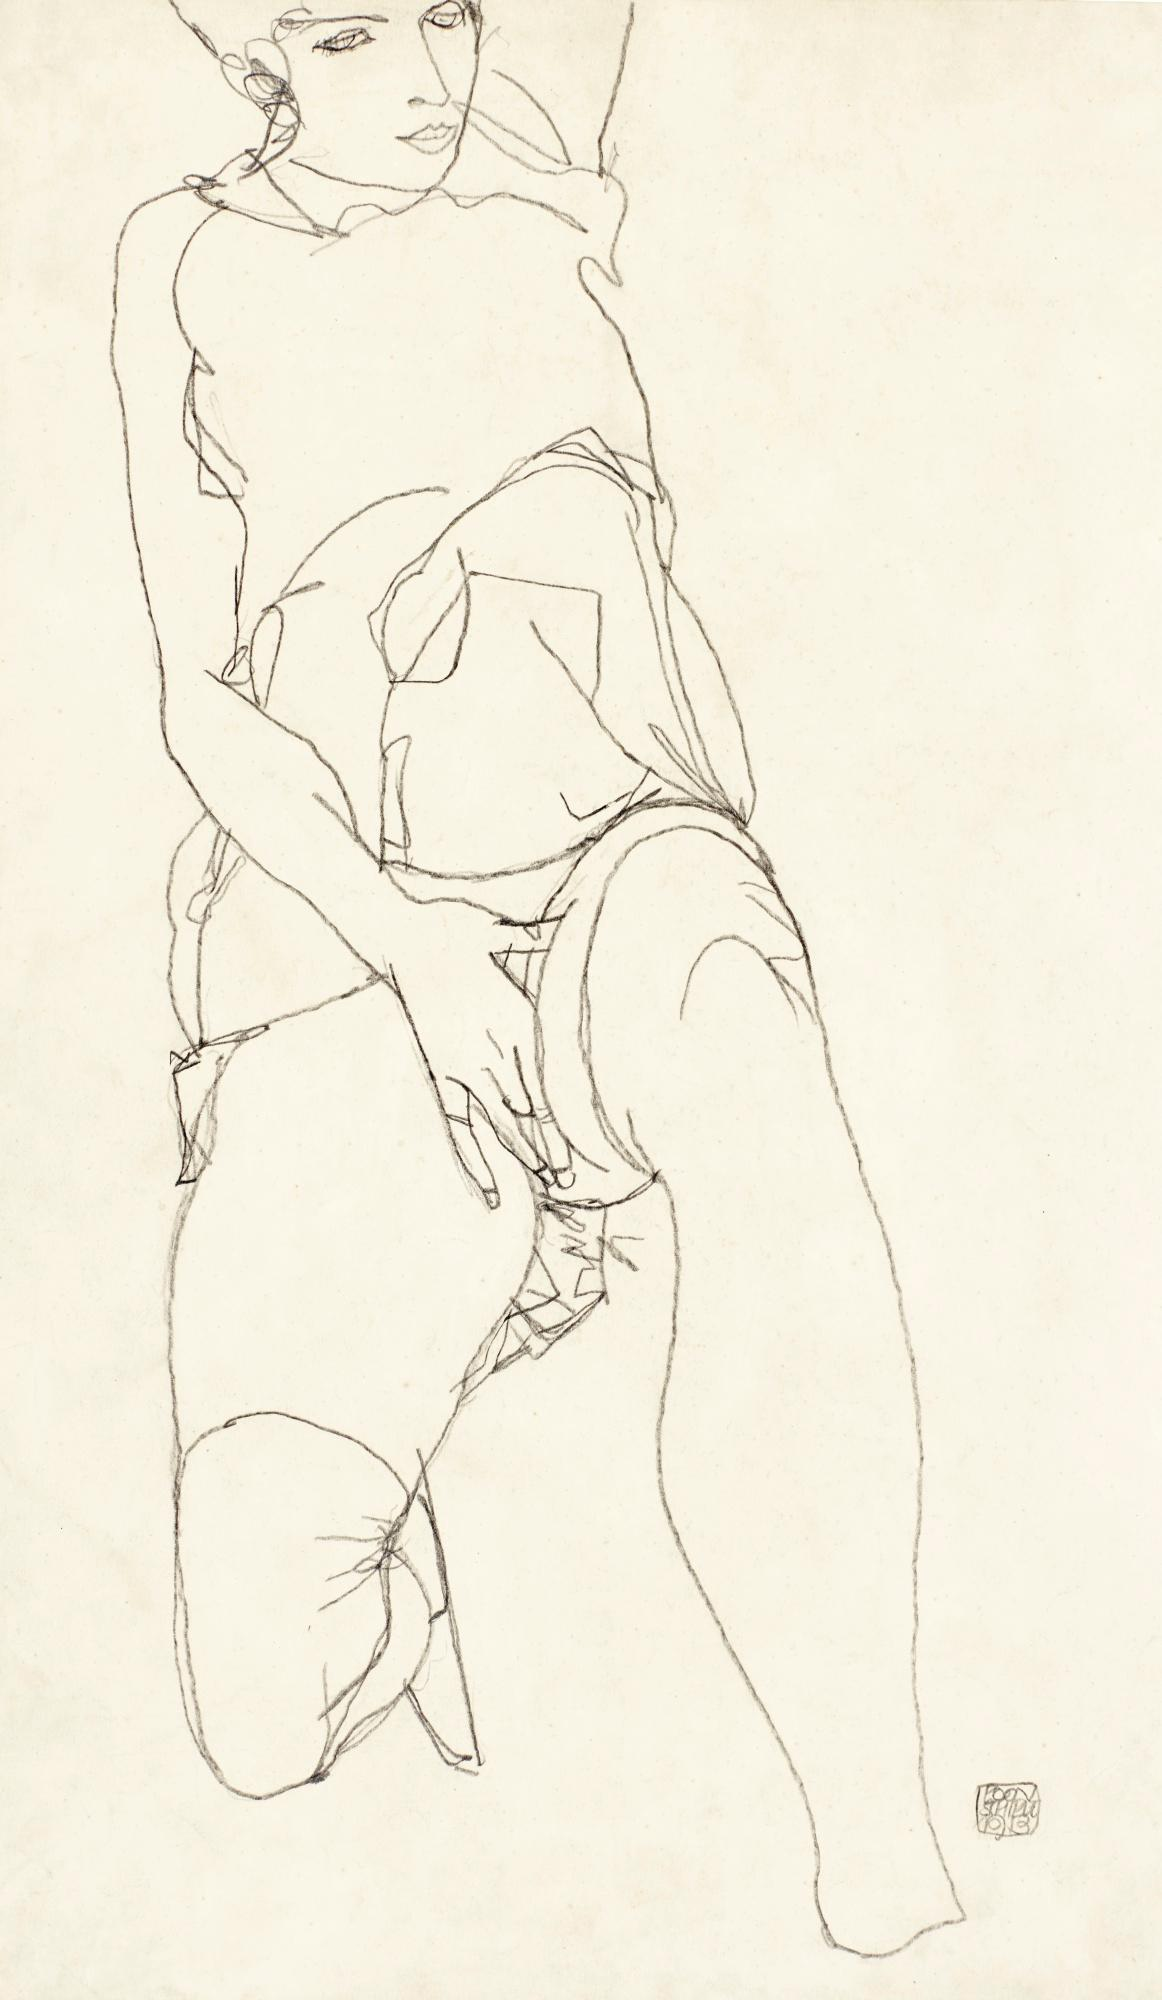 Liegende (Reclining Woman) by Egon Schiele